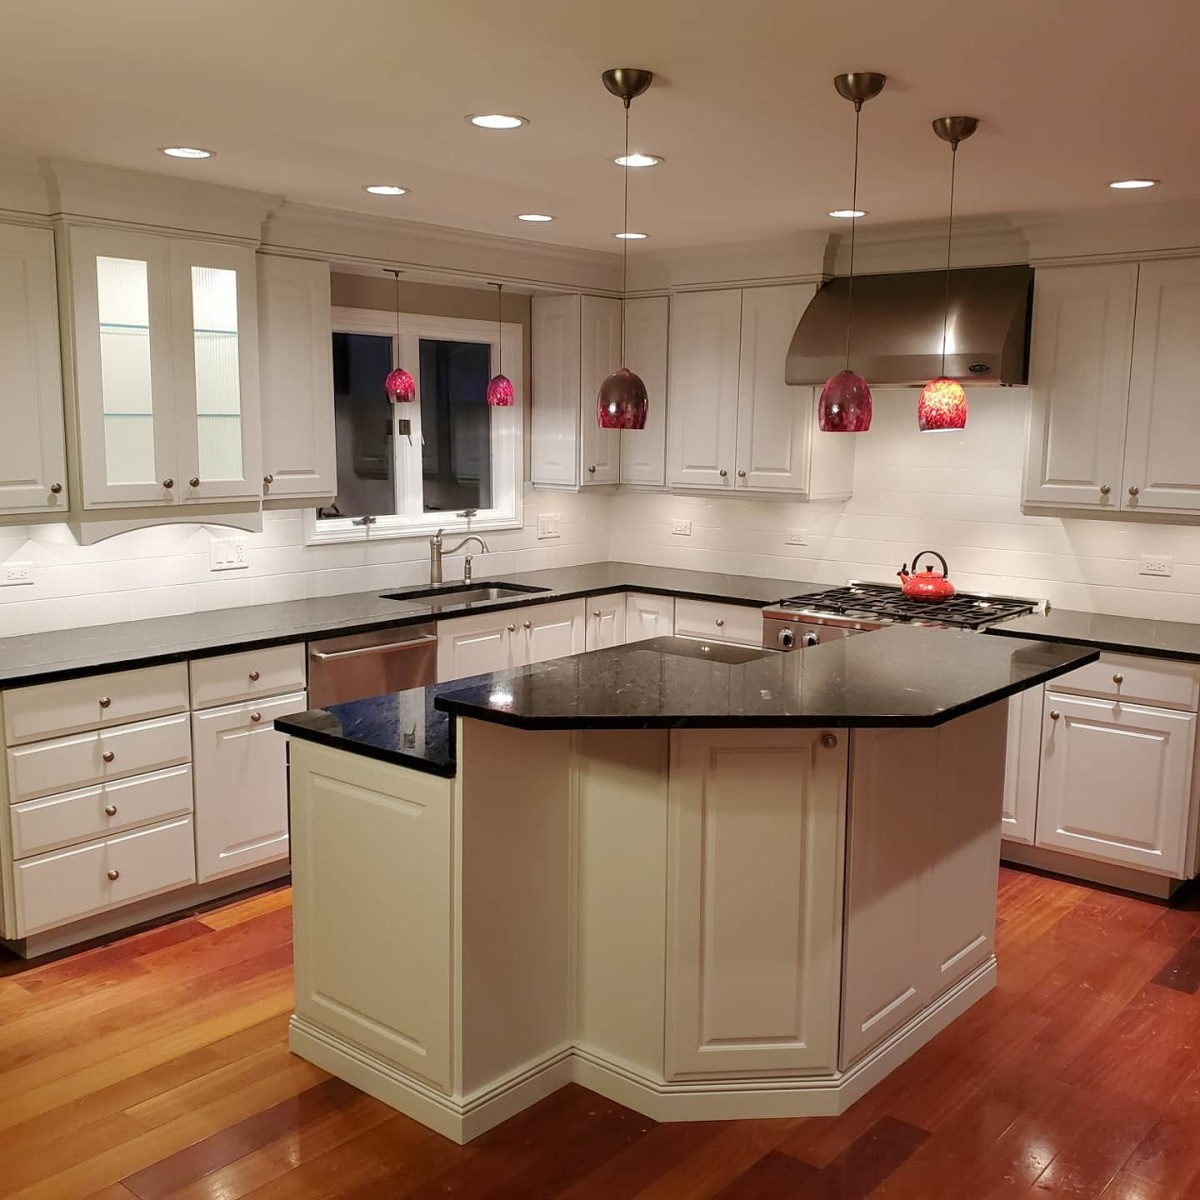 A kitchen I painted, including the walls, ceiling and cabinets.